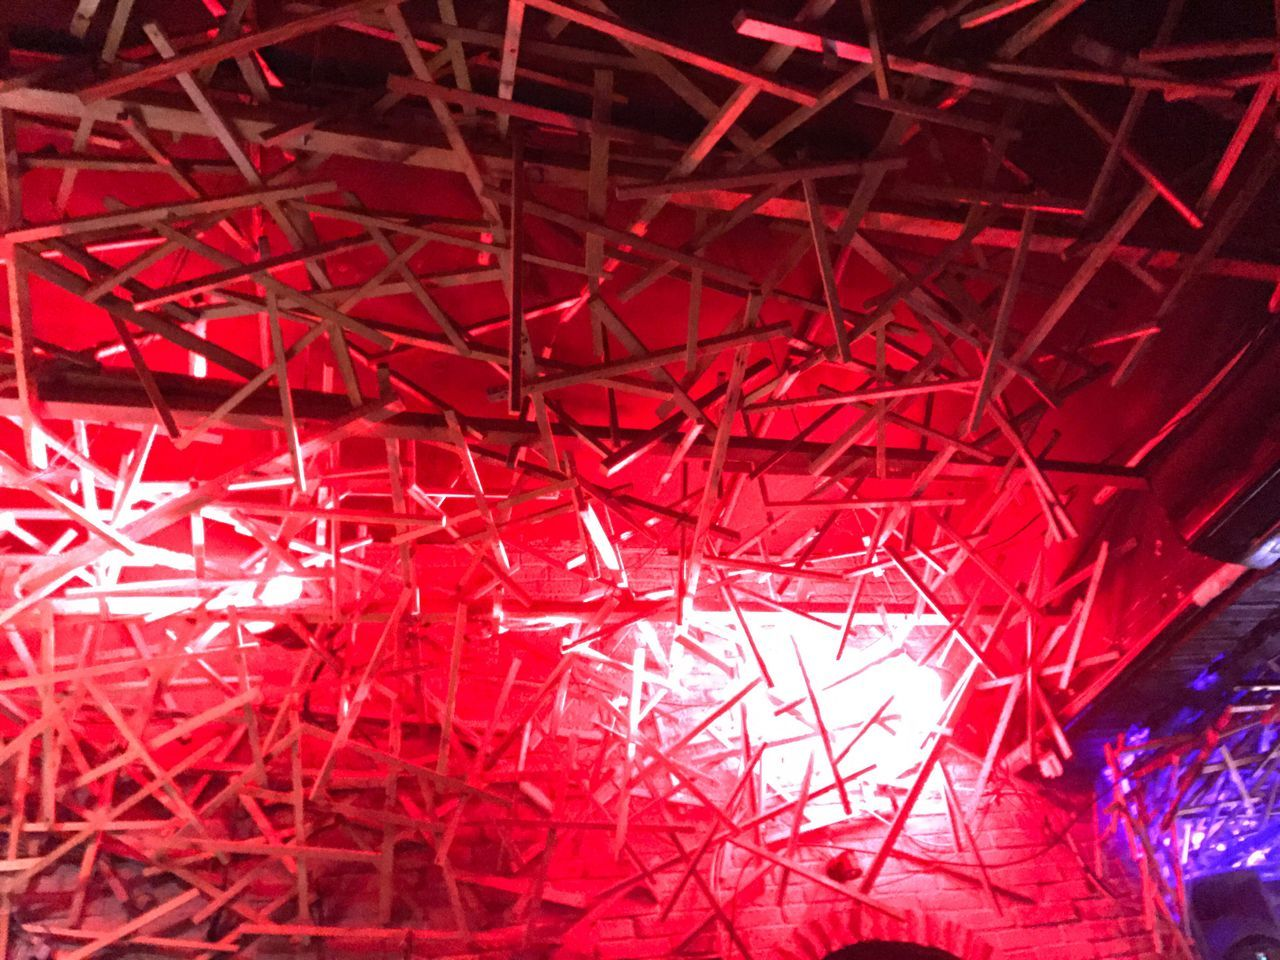 red, low angle view, illuminated, backgrounds, no people, full frame, abstract, indoors, close-up, night